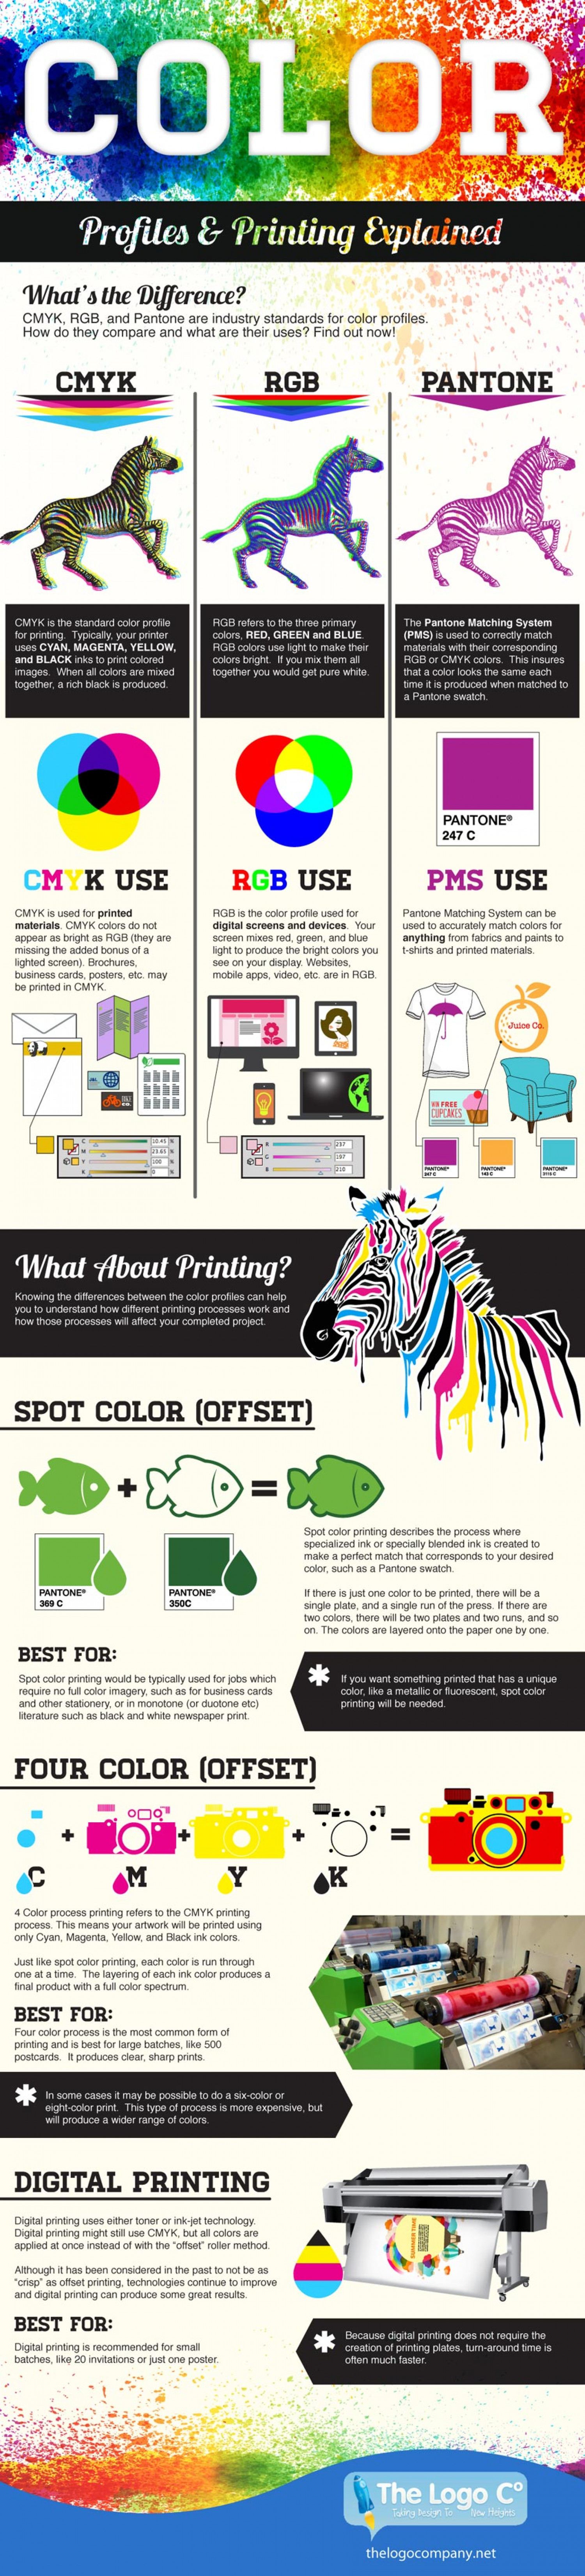 Color Profiles & Printing Explained Infographic